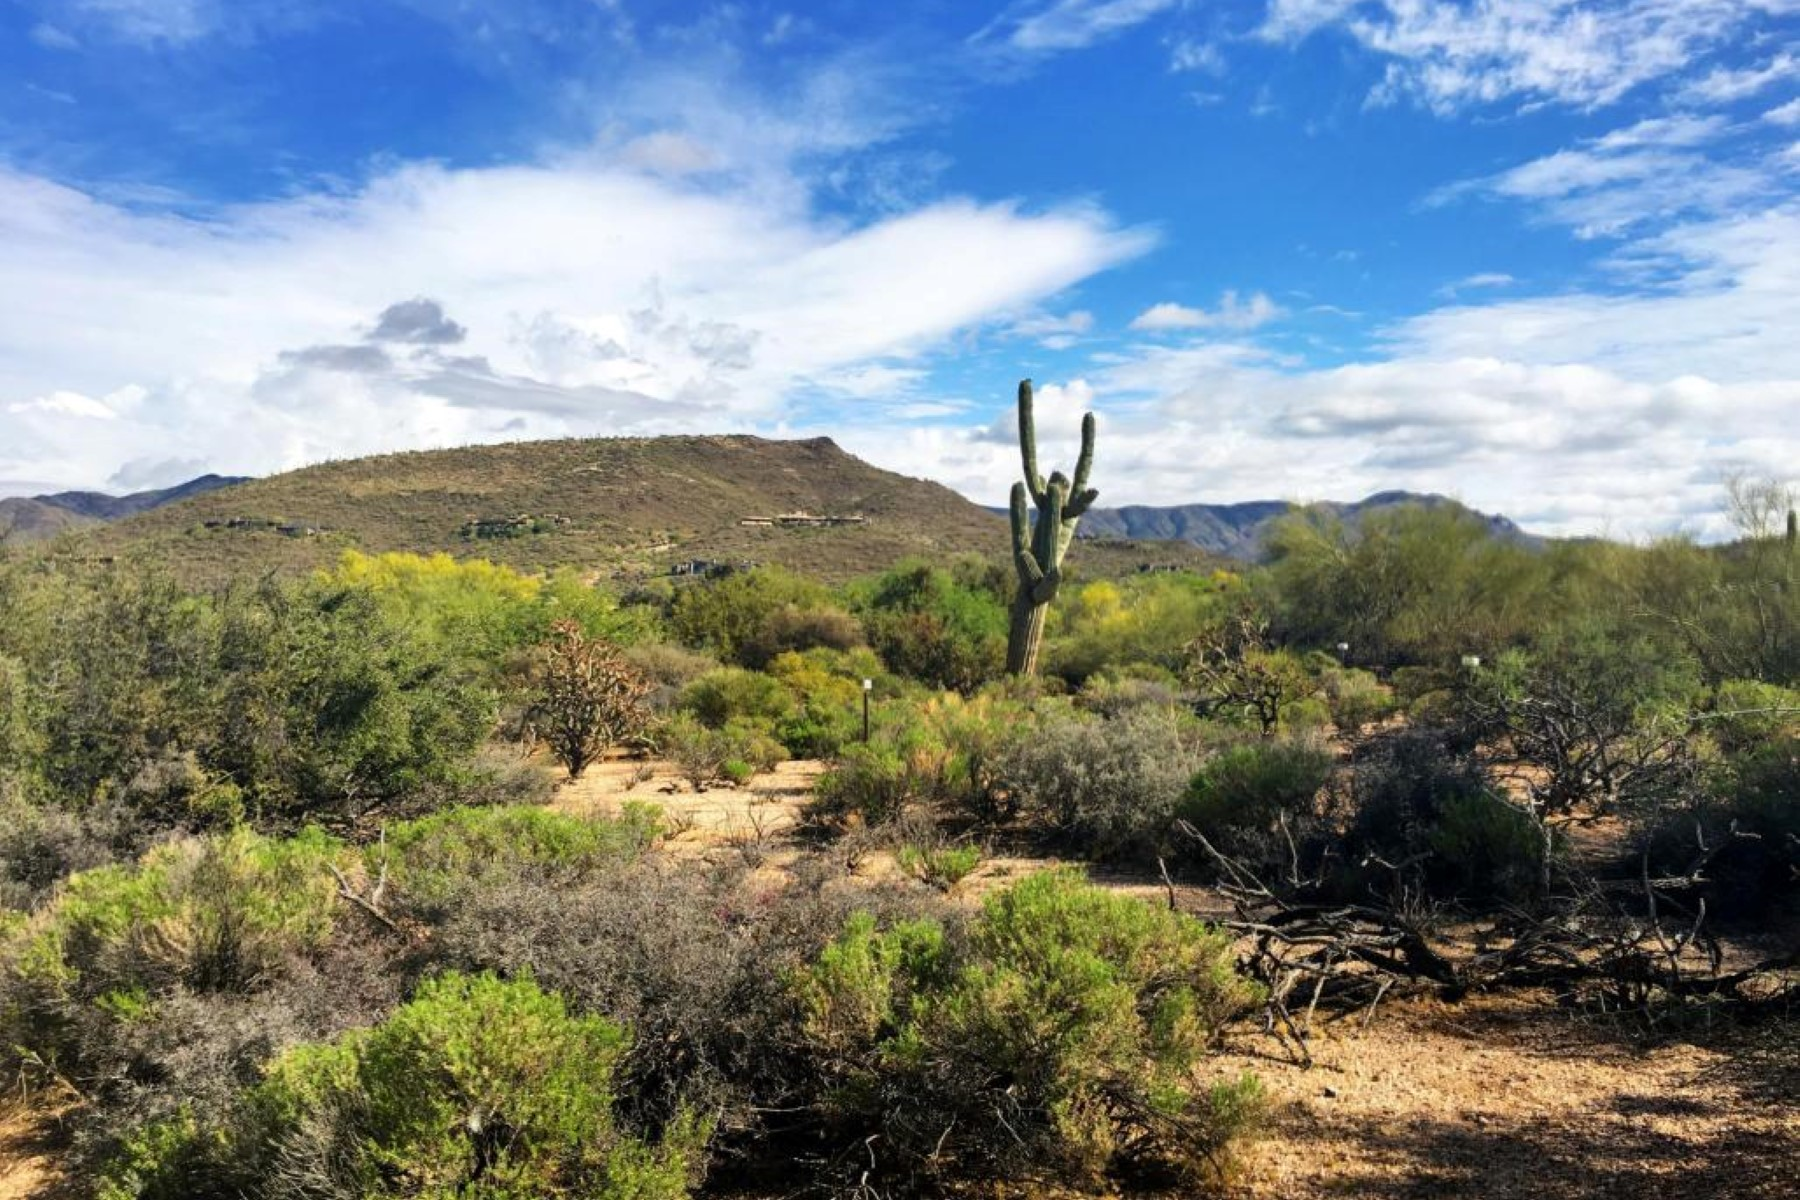 Terreno por un Venta en Homesite in Desert Mountain's Village of Gambel Quail 9396 E Sundance Trl #77 Scottsdale, Arizona, 85262 Estados Unidos